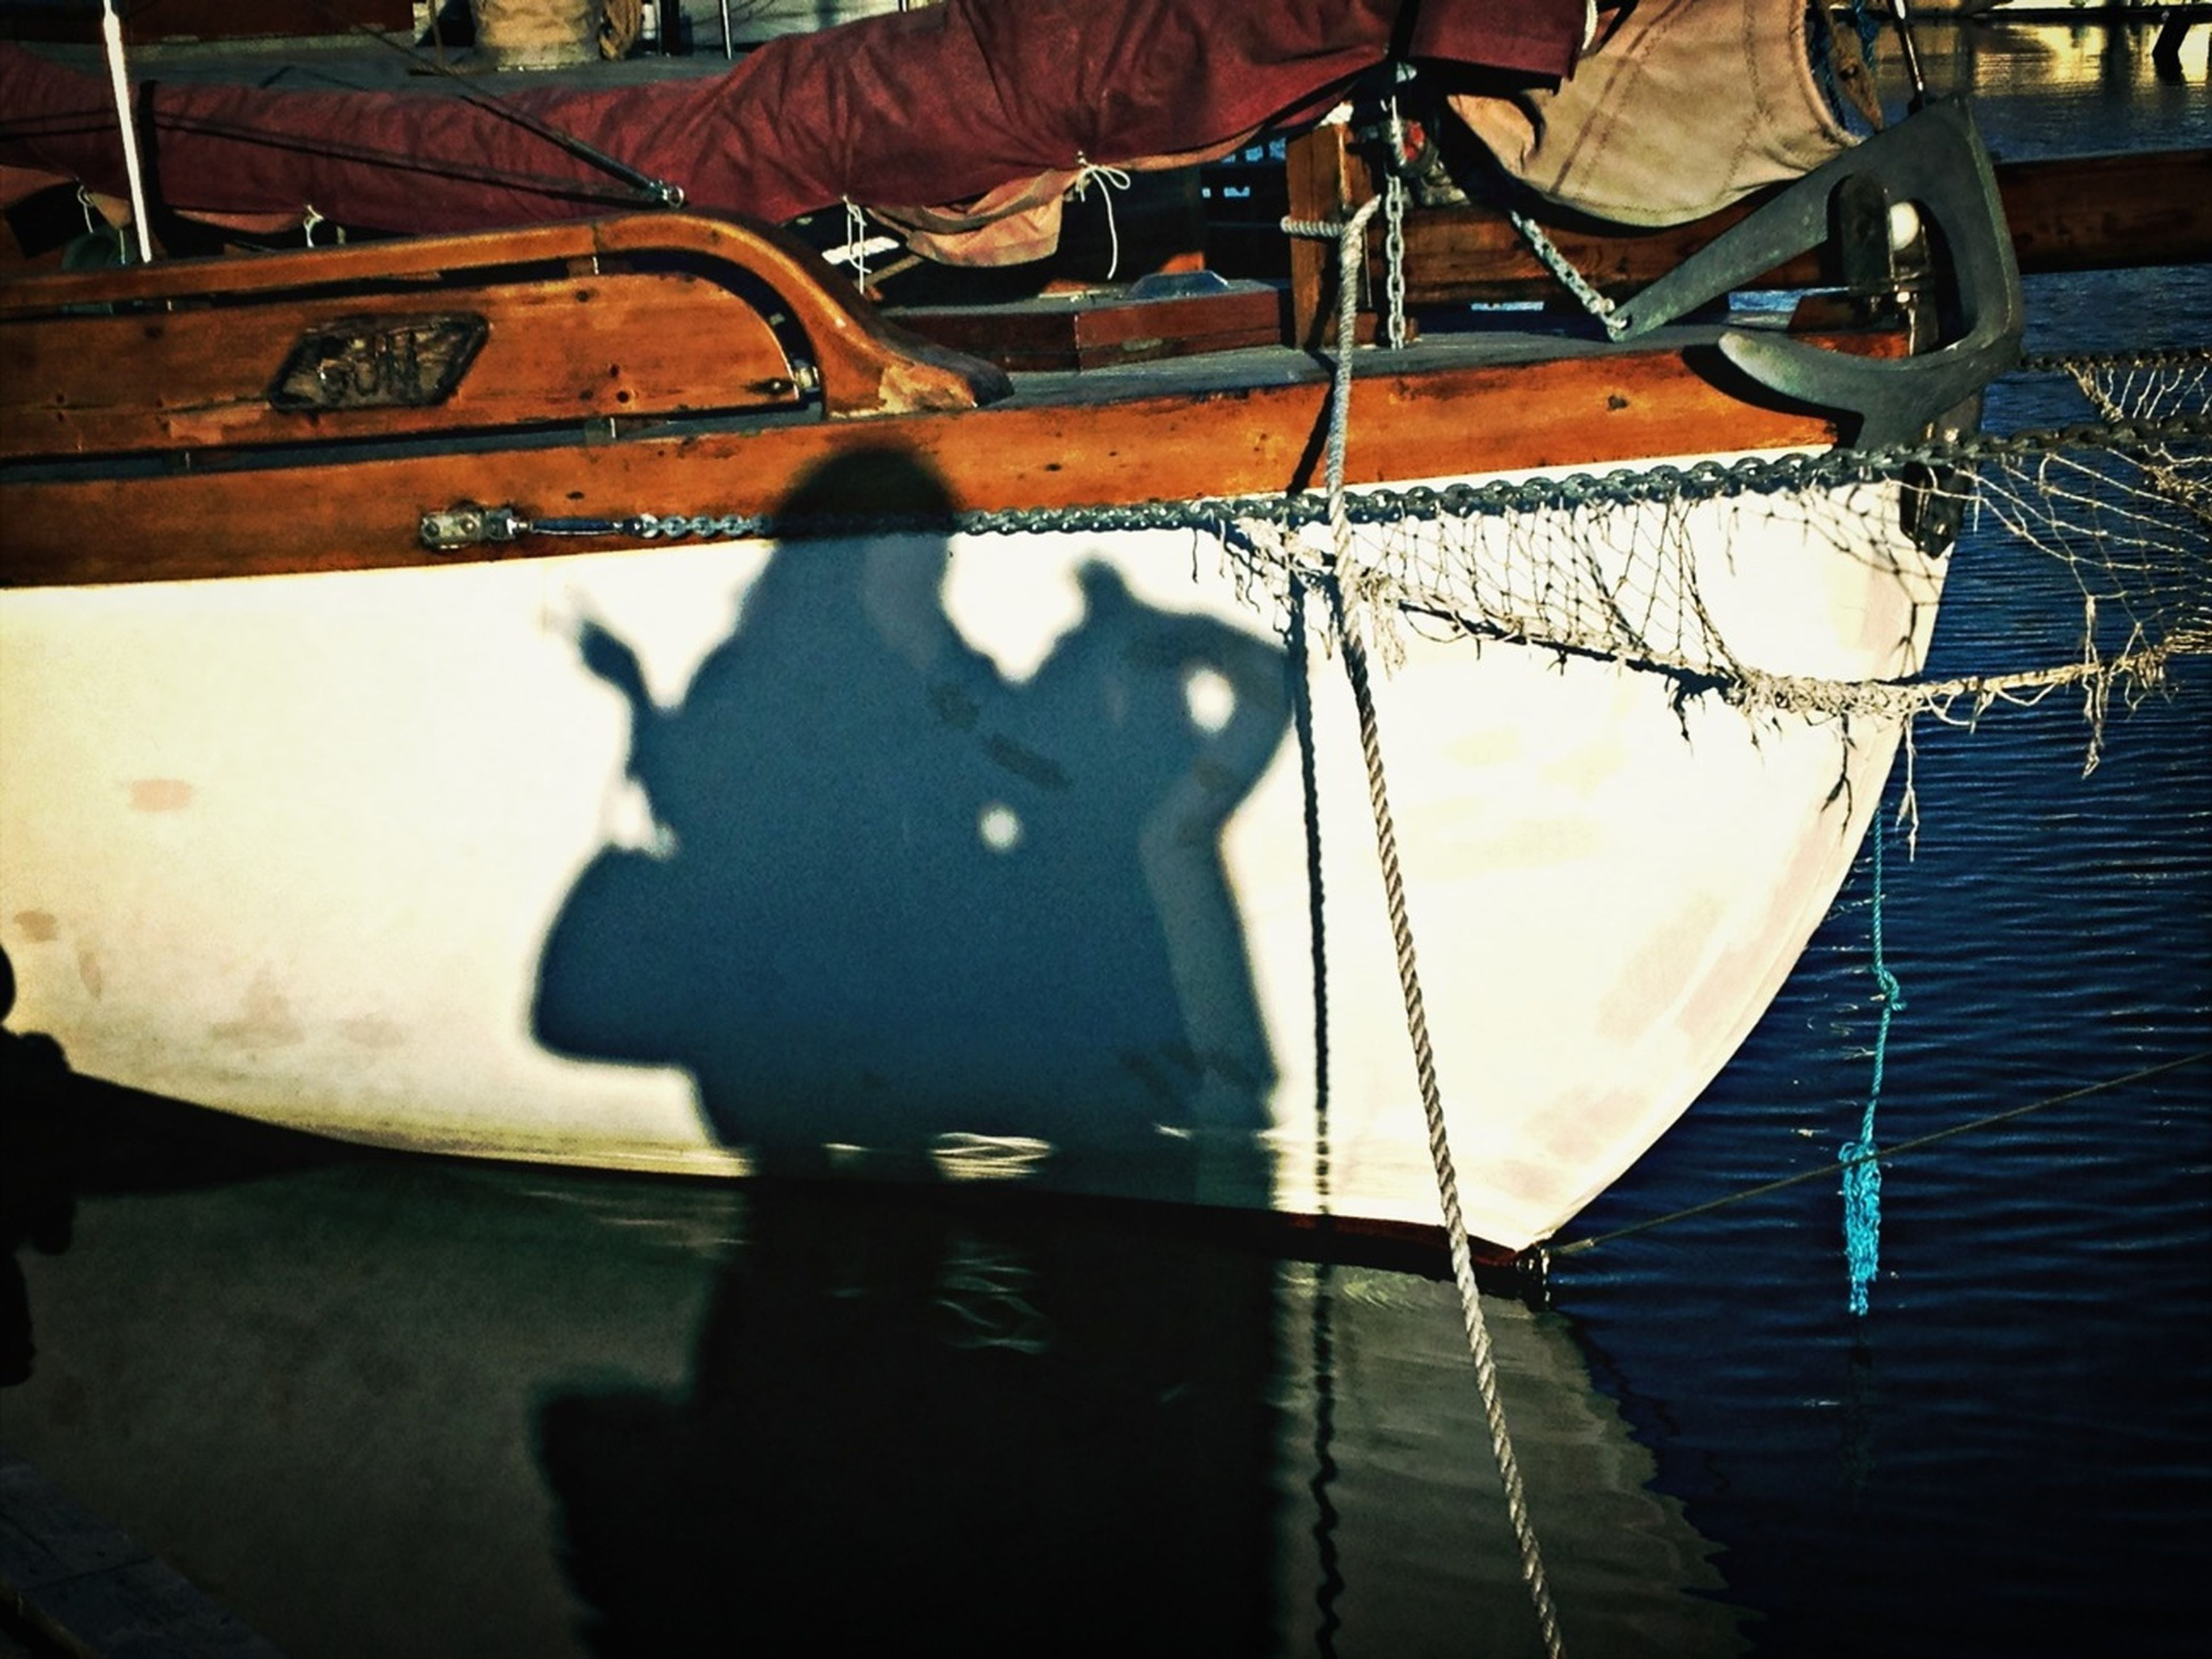 mode of transport, nautical vessel, transportation, water, rope, boat, moored, outdoors, harbor, metal, high angle view, sunlight, protection, day, chain, close-up, no people, safety, reflection, sky